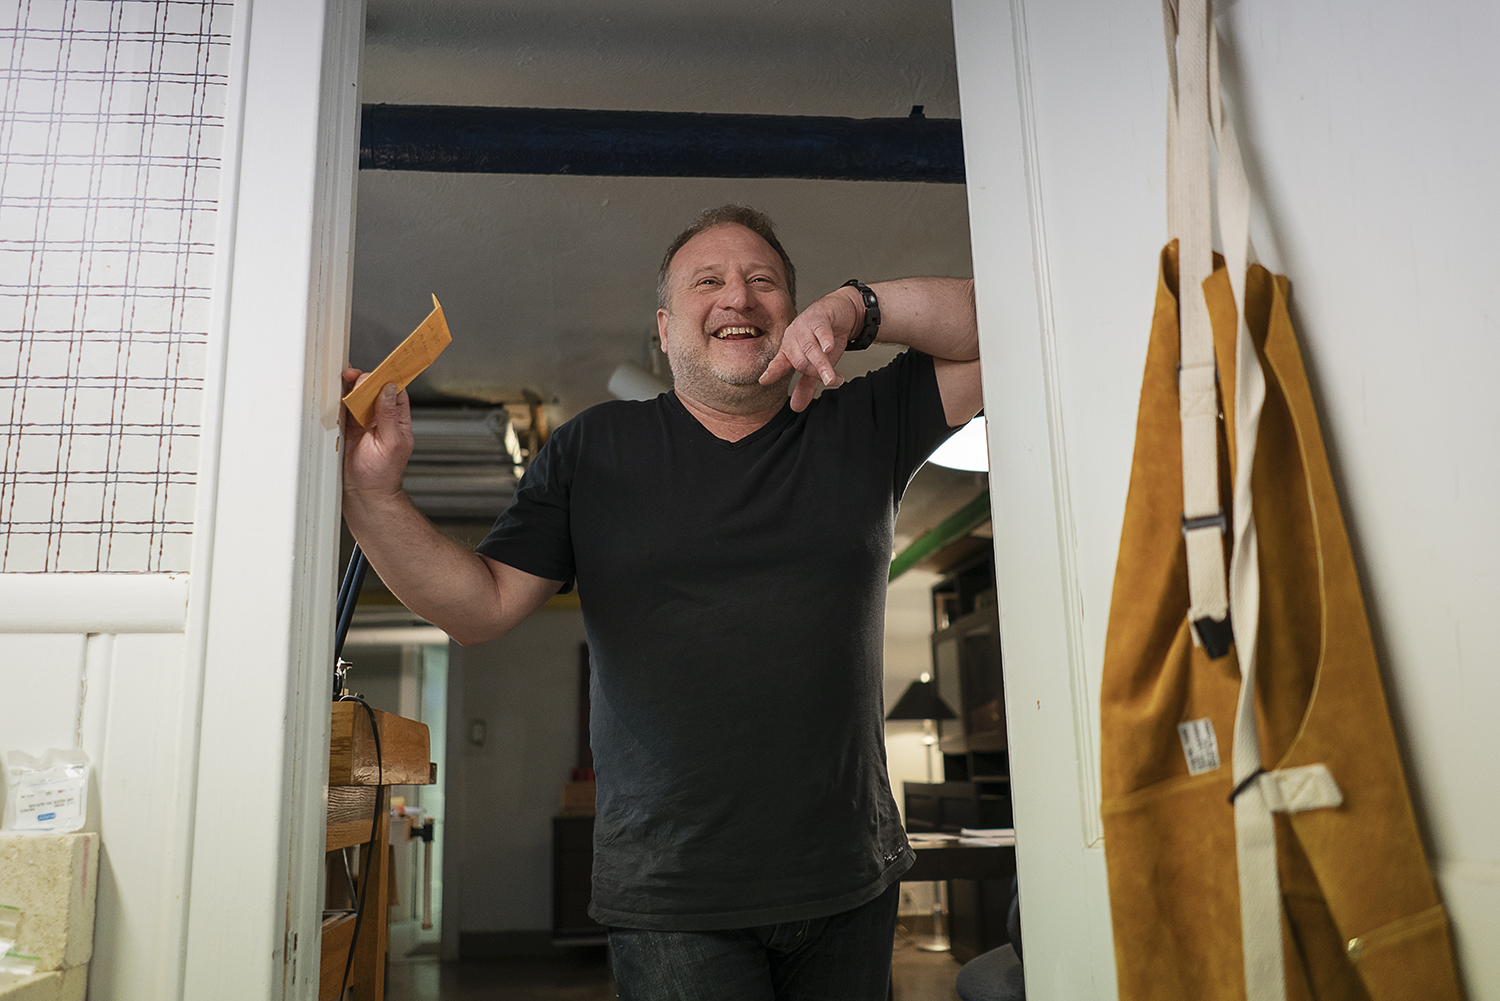 Flint, MI - Tuesday, May 8, 2018: Flint resident and metalsmith Robert McAdow laughs as he leans on the doorway to his soldering area in his studio.Tim Galloway for FlintSide